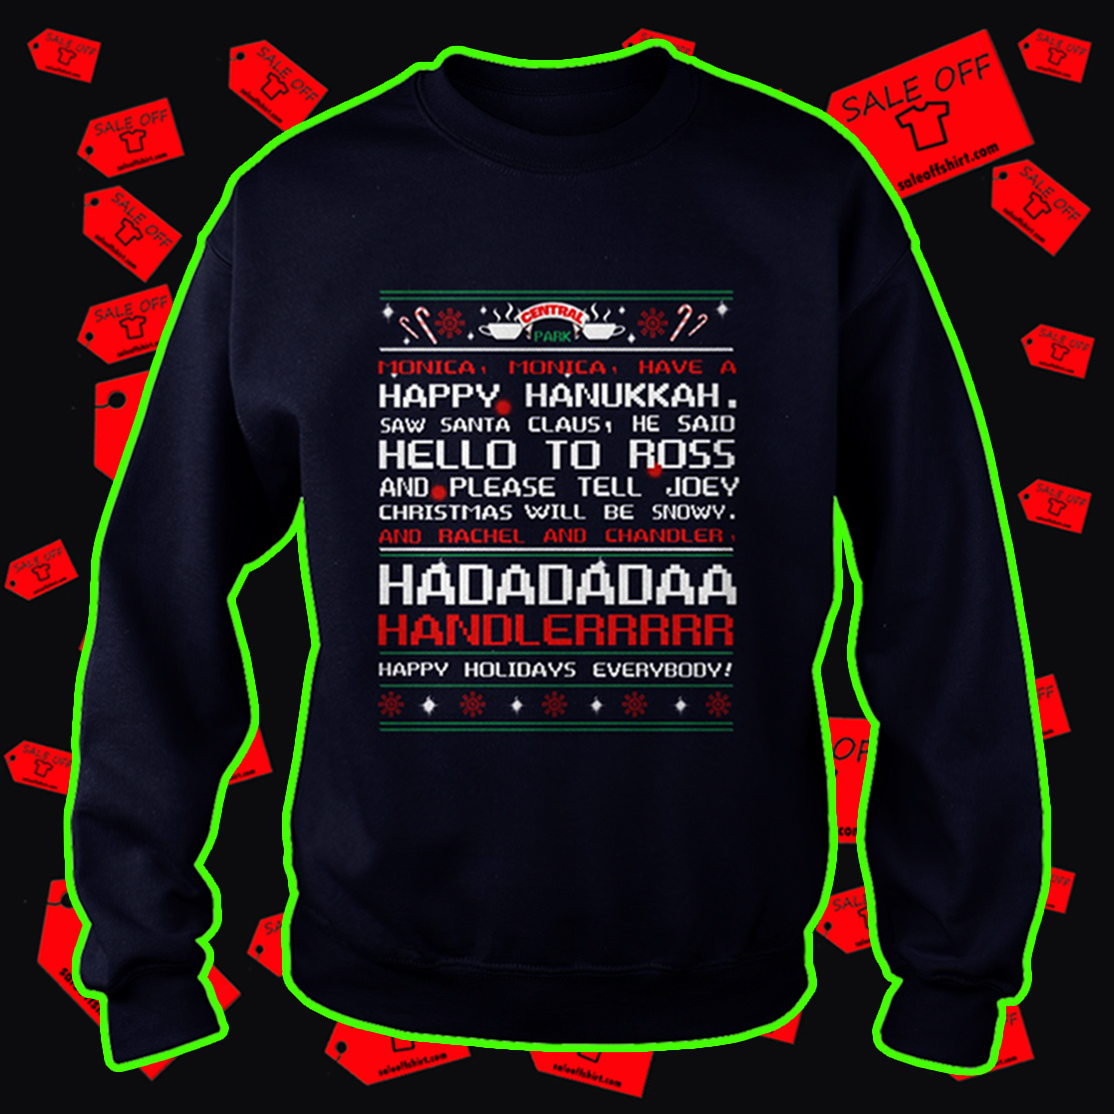 Central Park monica monica have a happy hanukkah ugly sweatshirt - navy